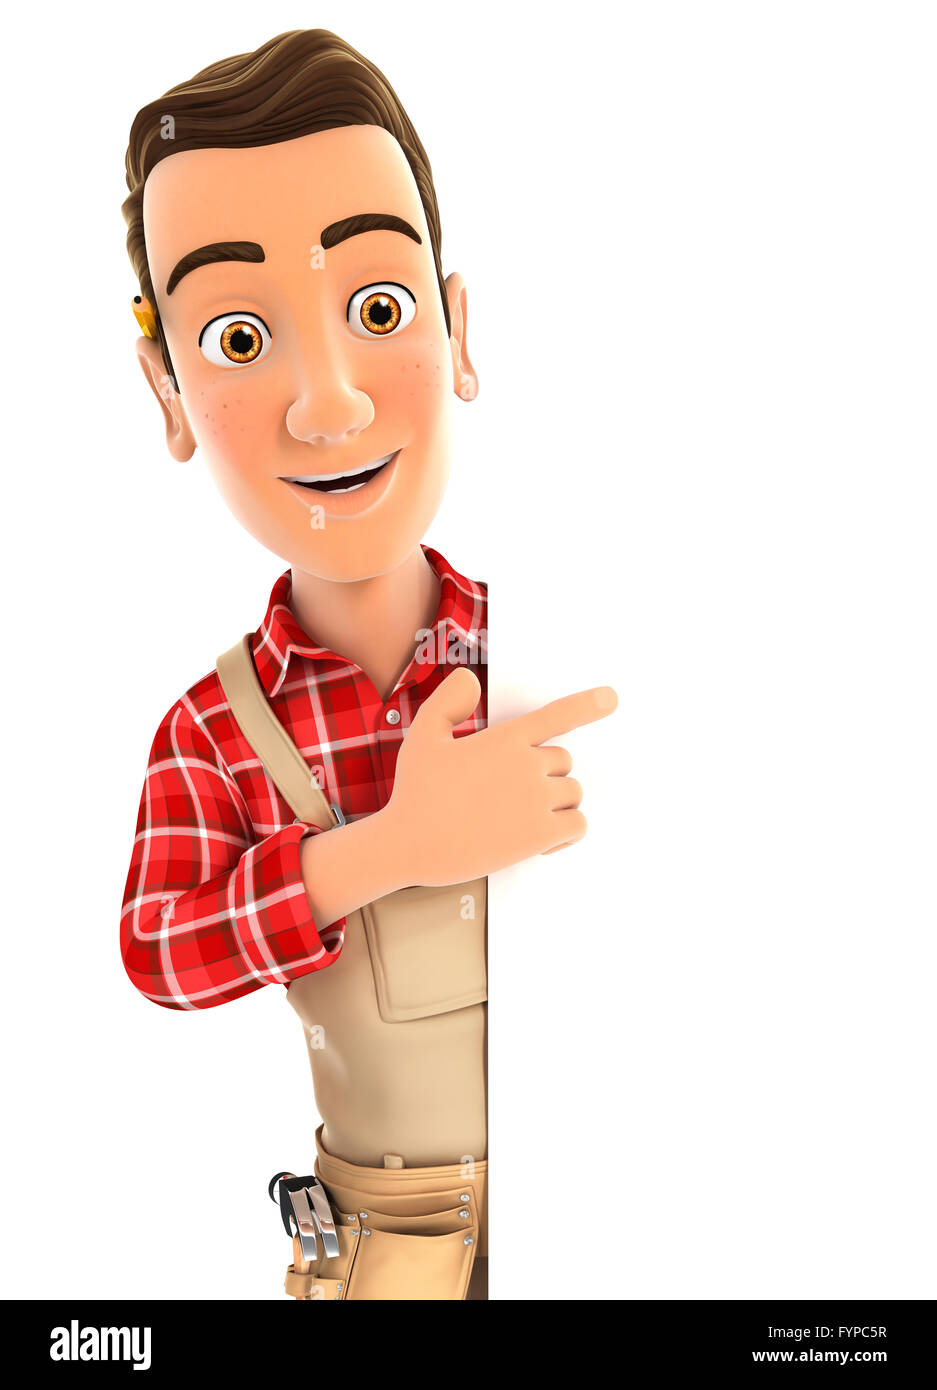 3d handyman pointing to right blank wall, illustration with isolated white background Stock Photo